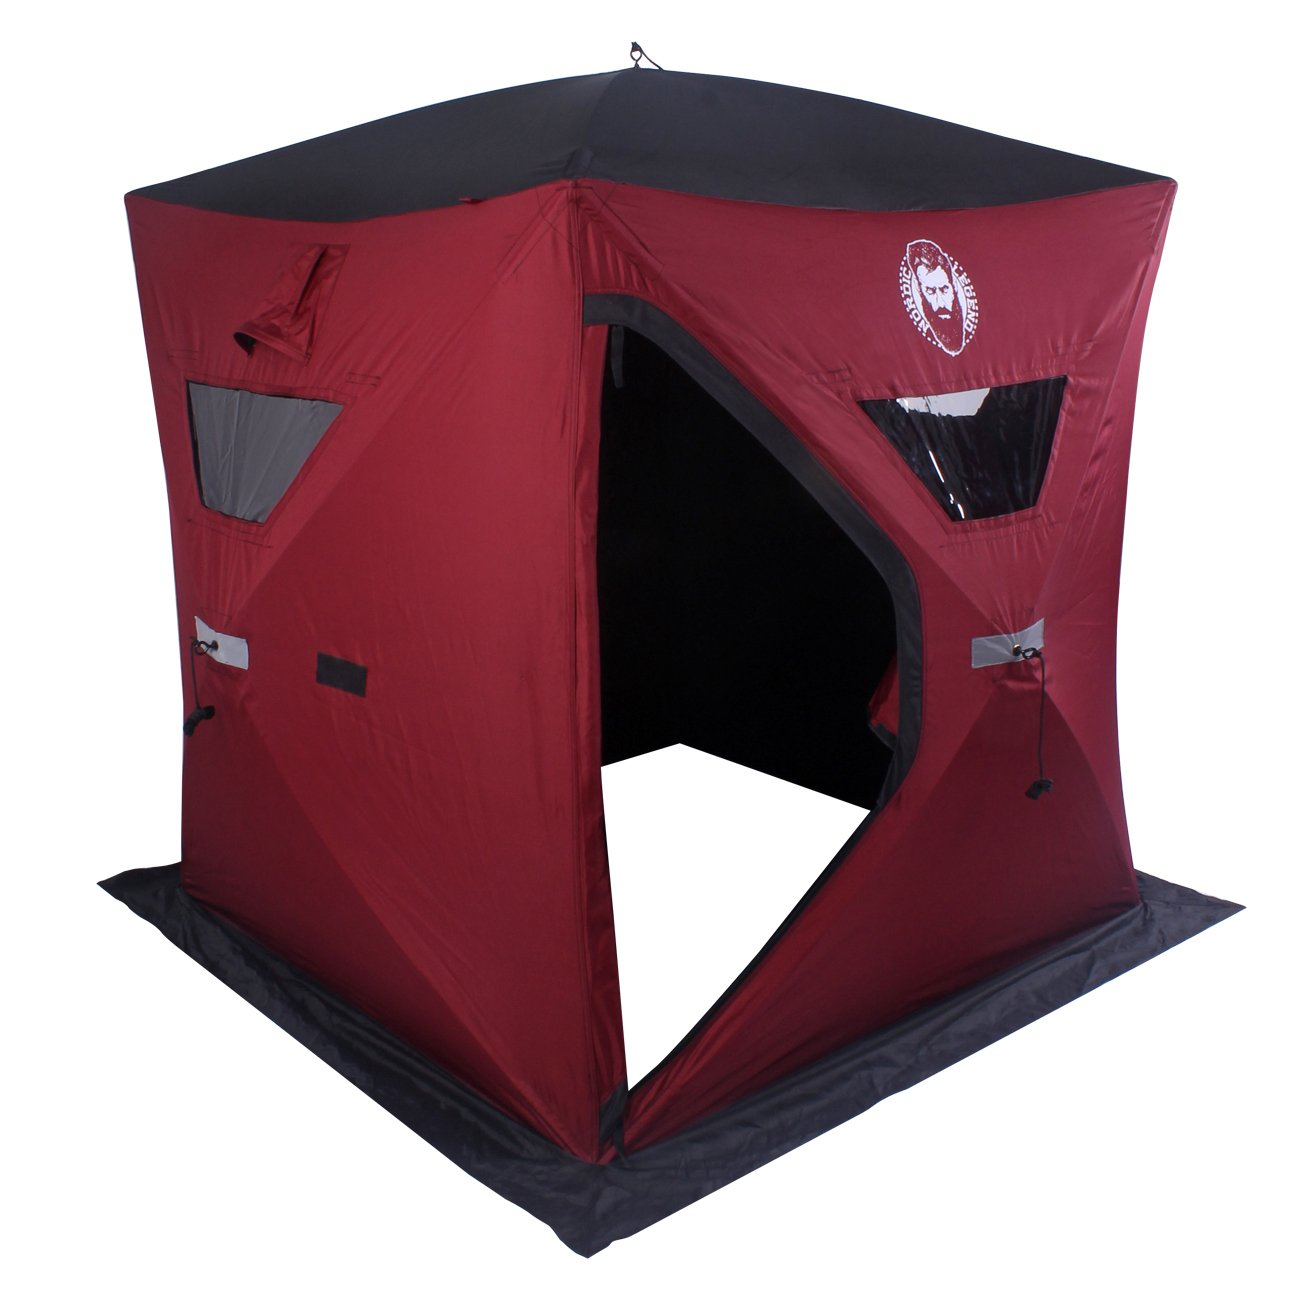 Nordic Legend Two Man Ice Shelter with FREE Bonus Ice Chairs! by Nordic Legend